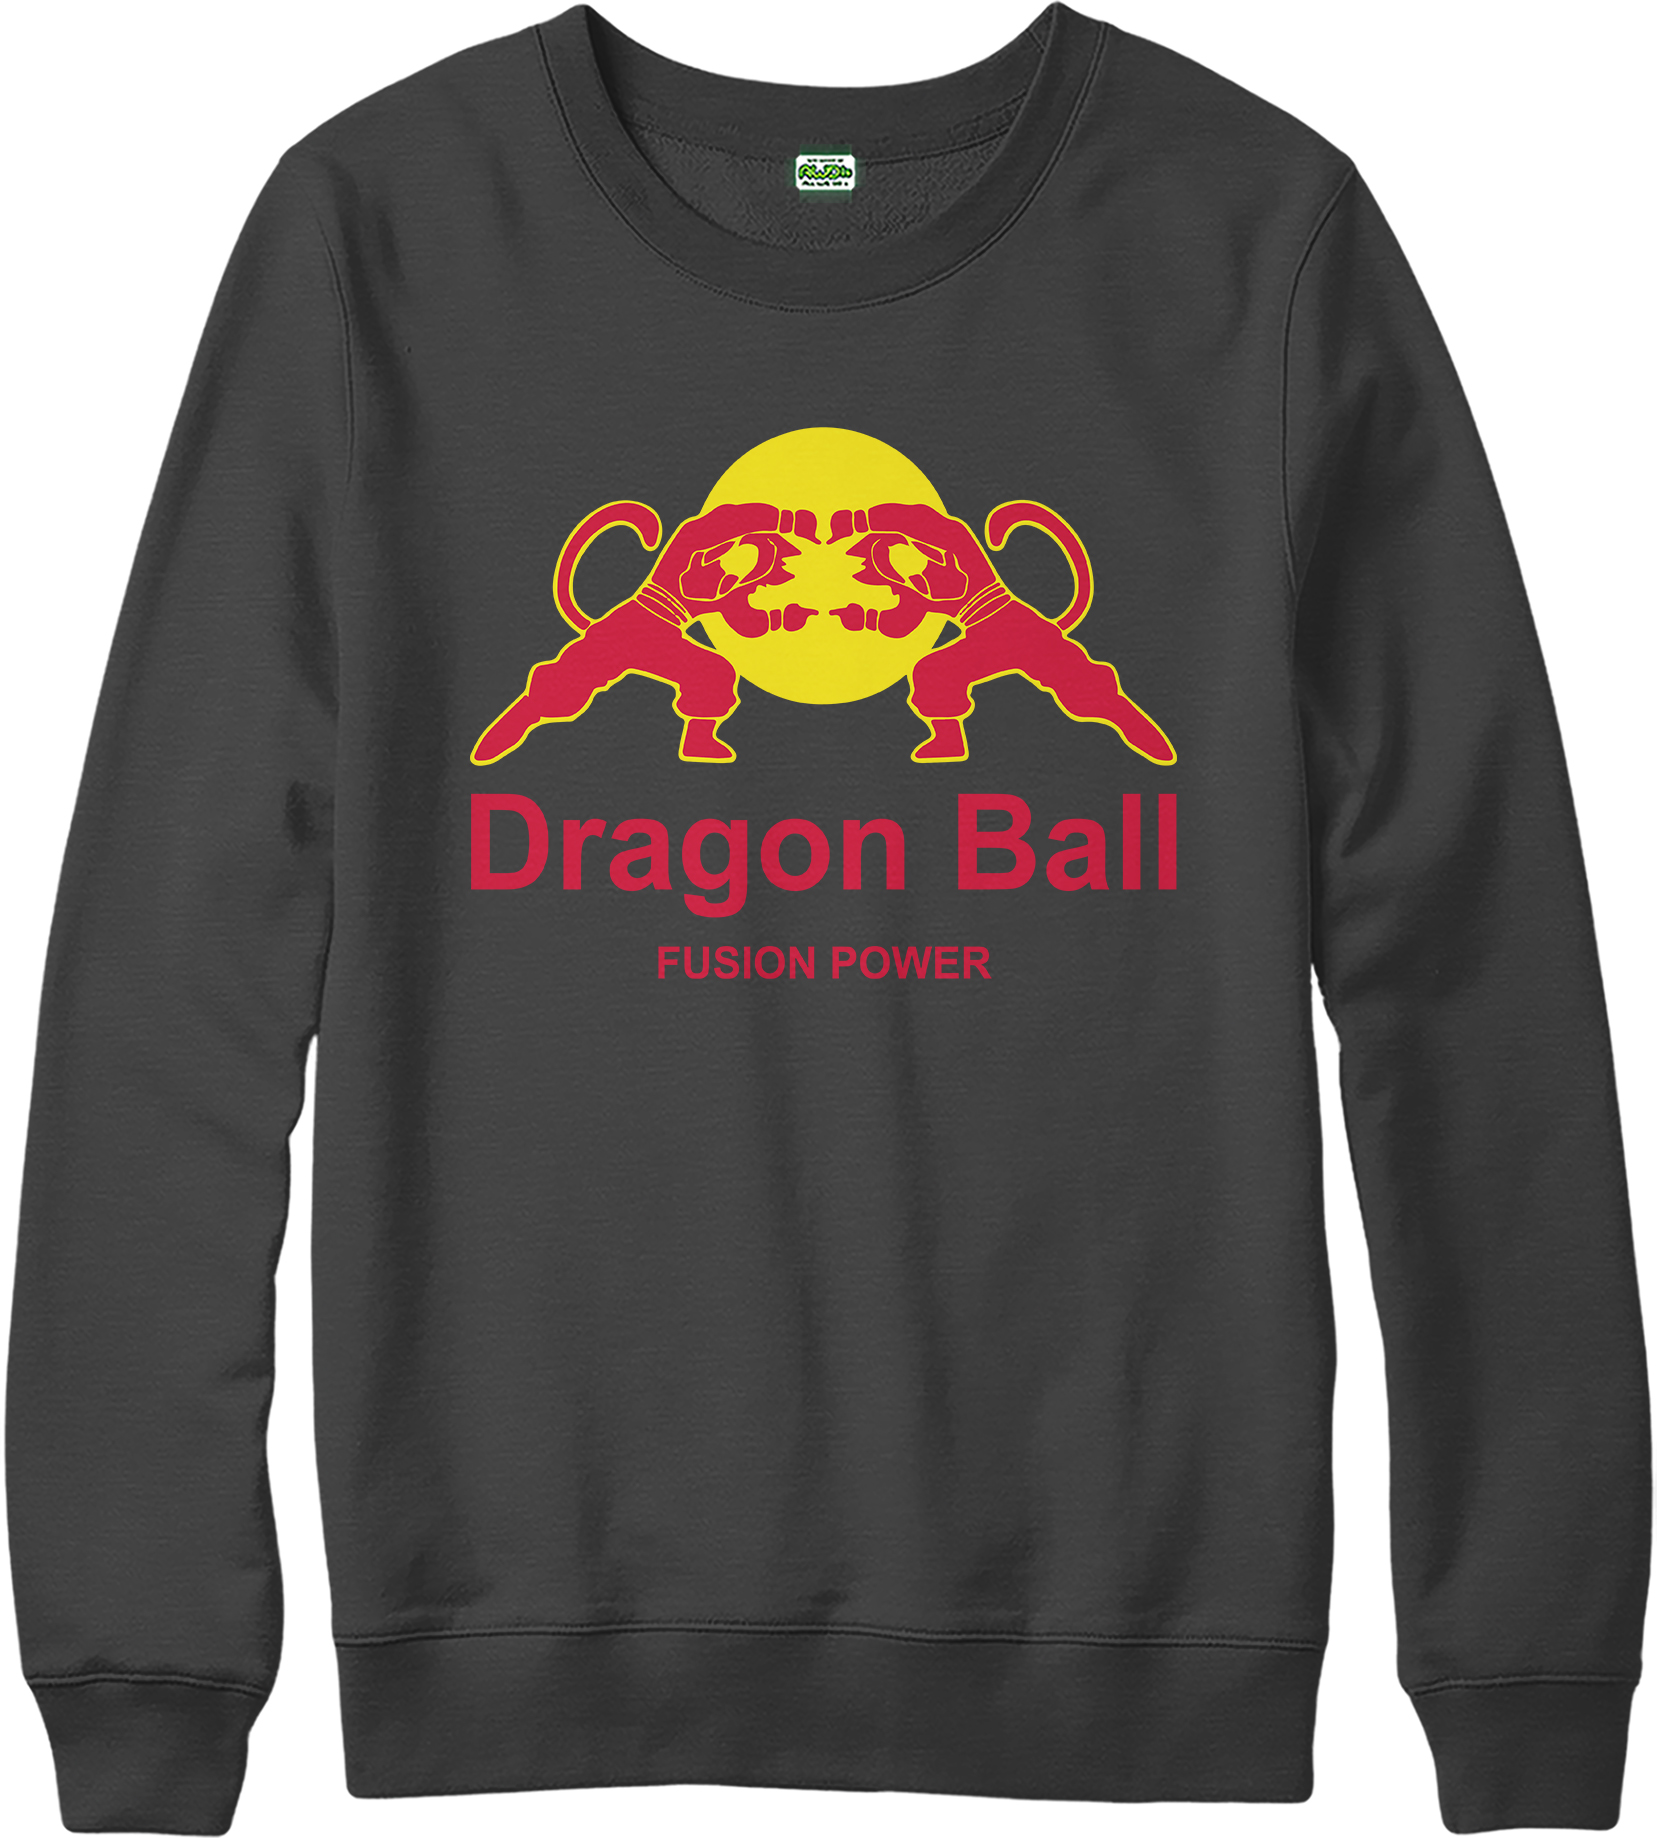 dragon ball z jumper red bull spoof jumper goku superhero top ebay. Black Bedroom Furniture Sets. Home Design Ideas